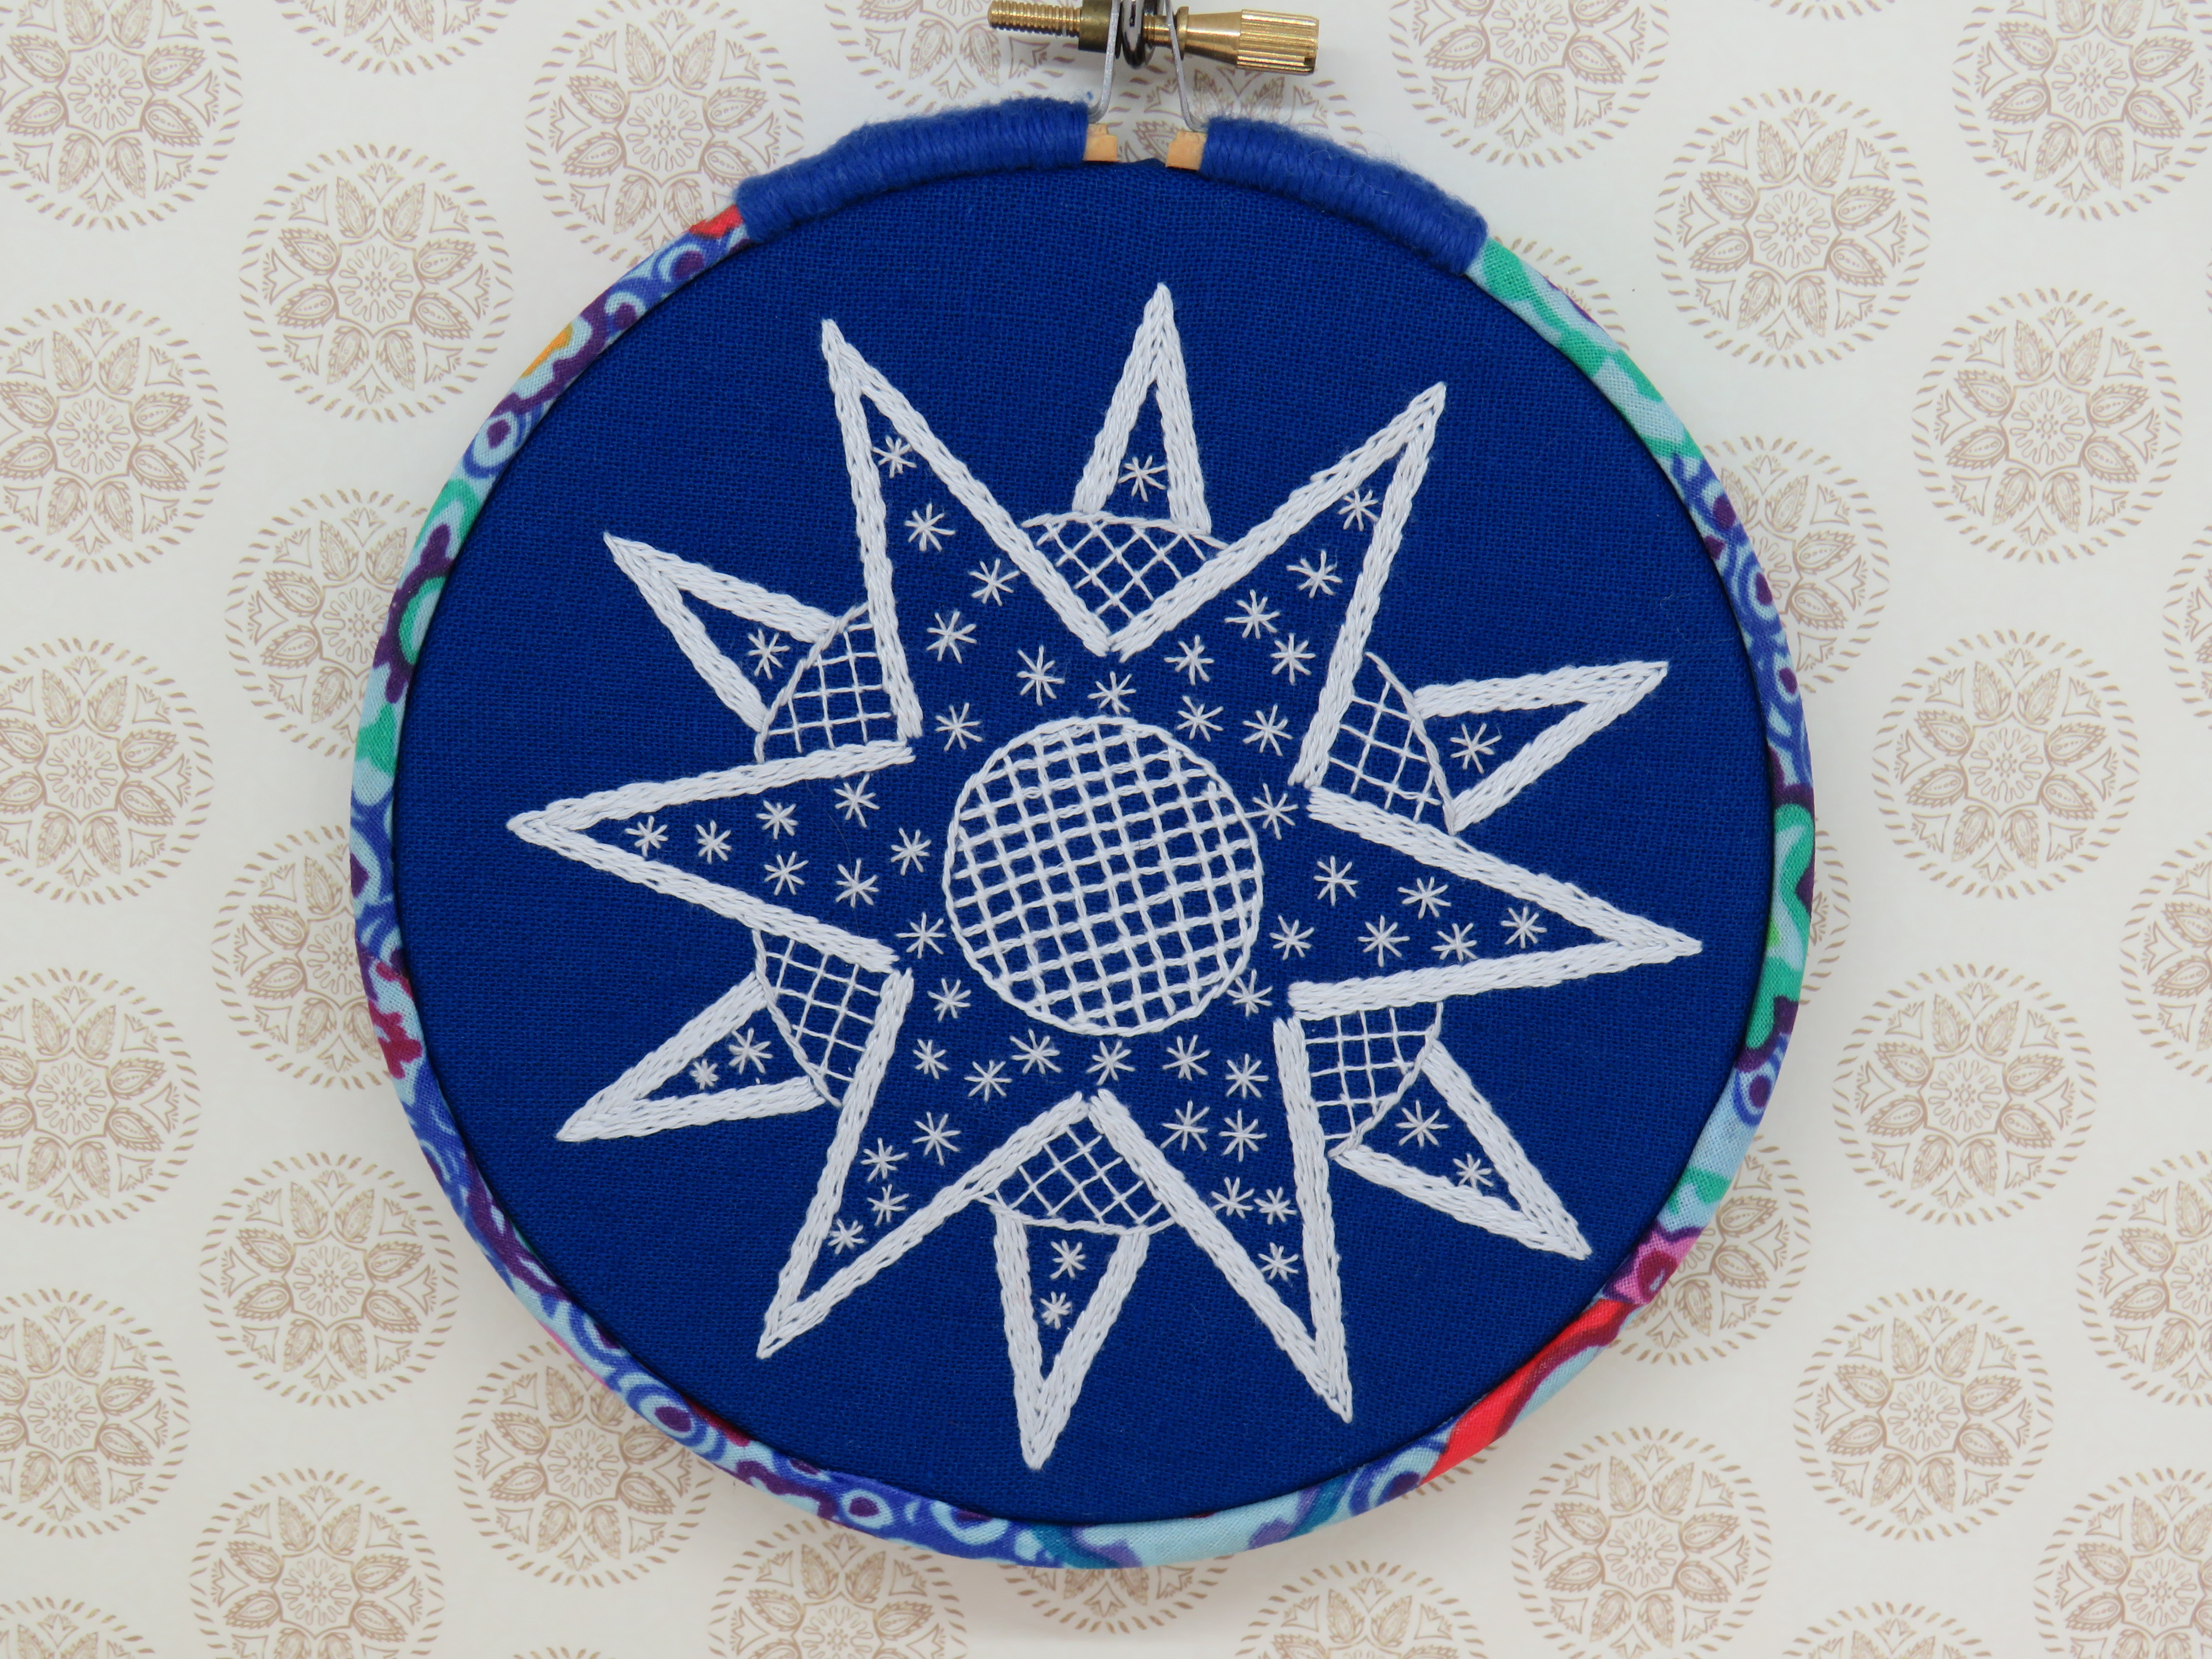 Star hand embroidery pattern by stitchdoodles